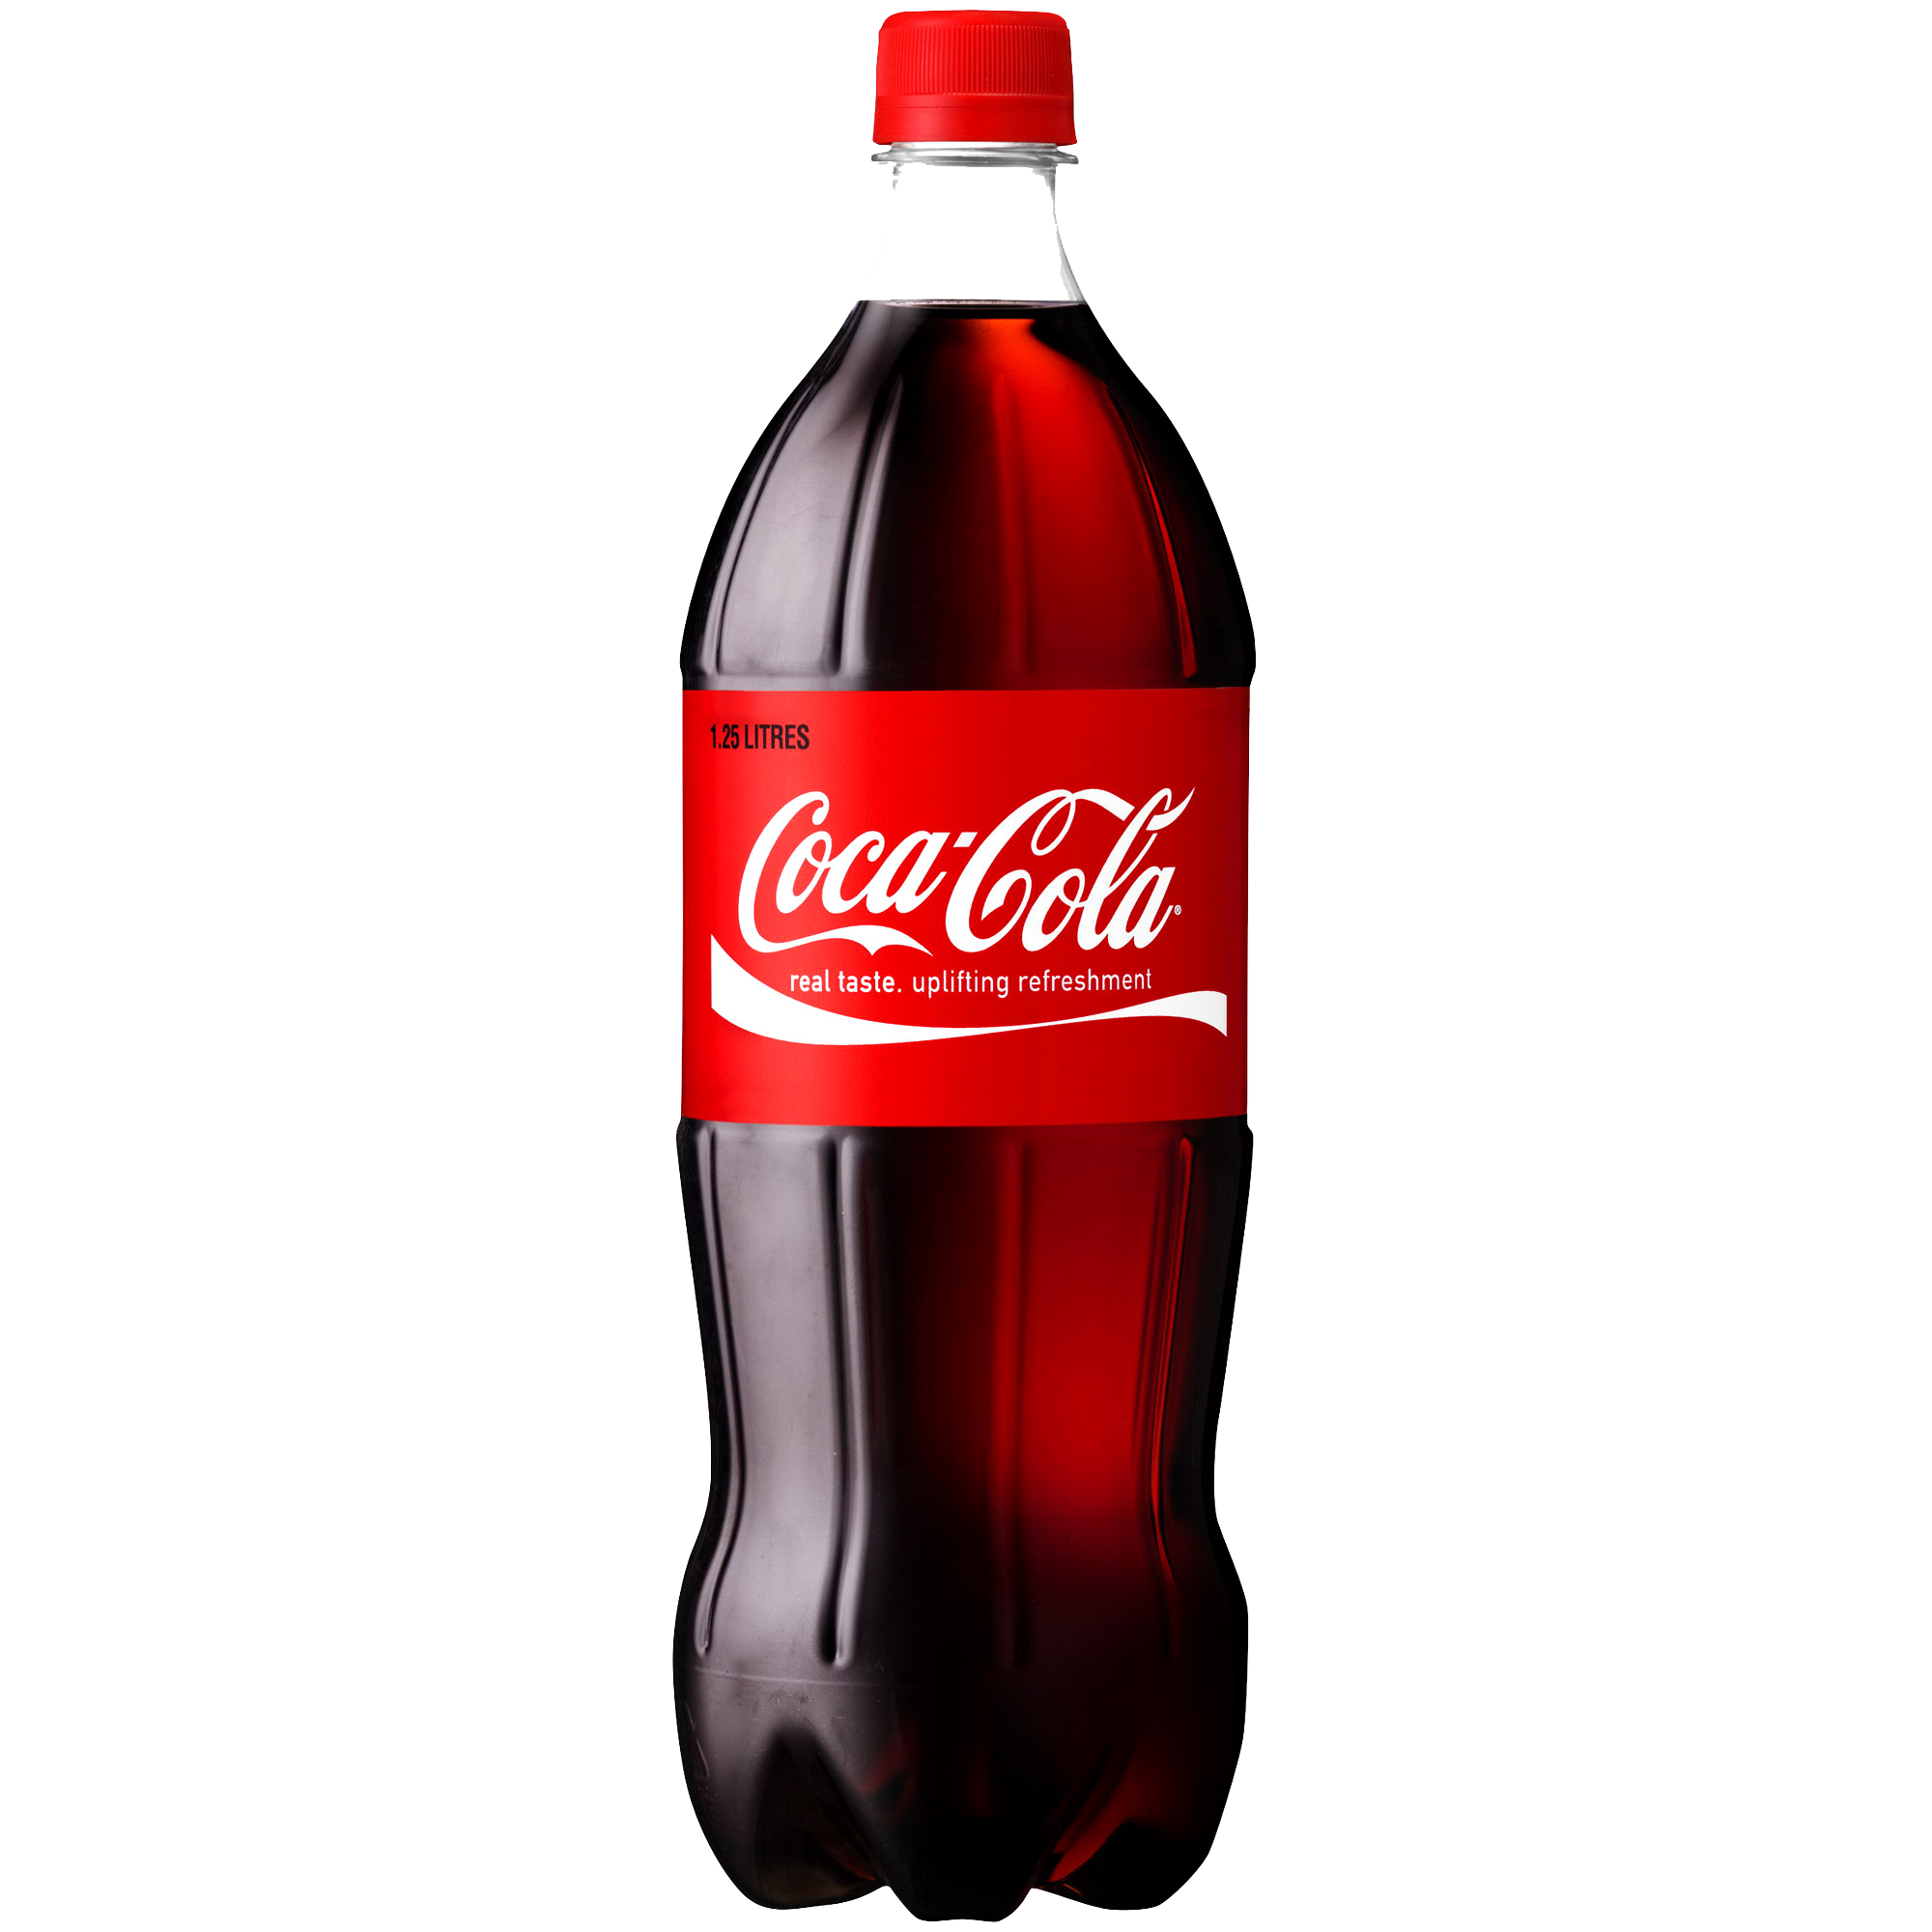 coca cola cartoon www pixshark com images galleries plastic soda bottle clipart soda bottle clipart free